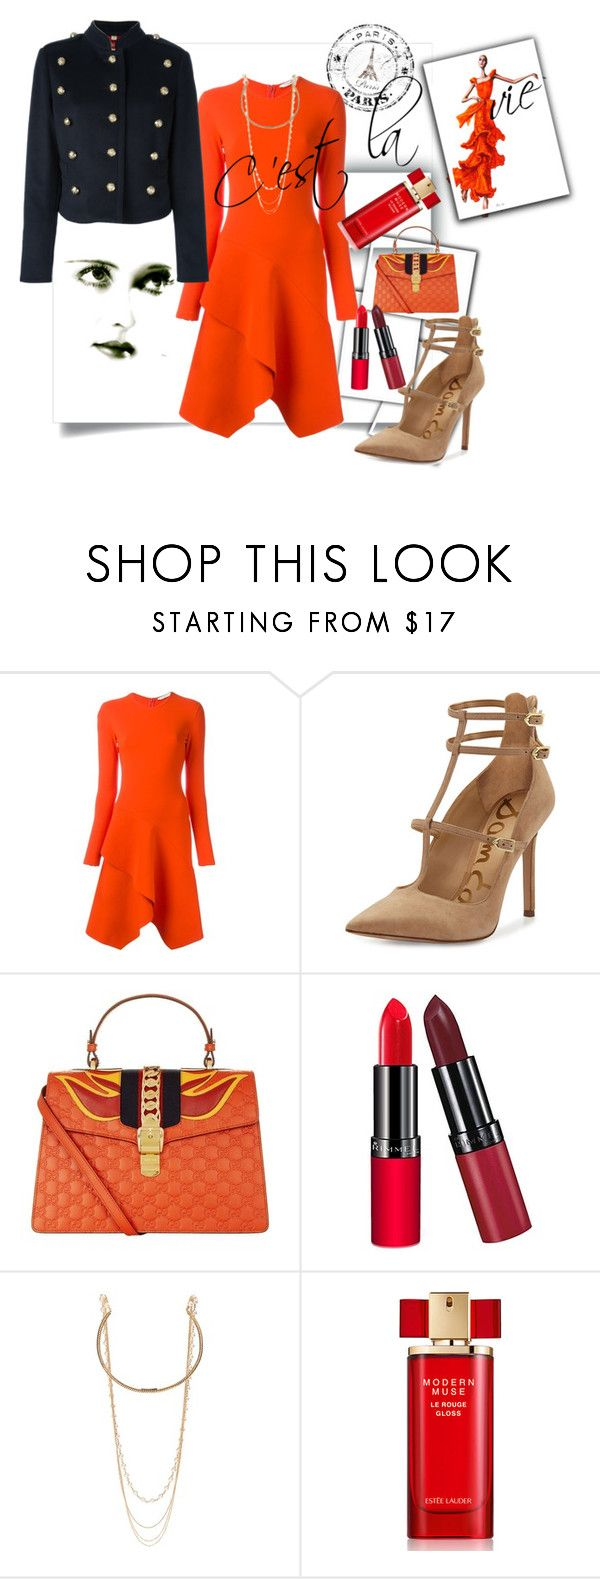 """C'est la vie"" by amaiba ❤ liked on Polyvore featuring Givenchy, Sam Edelman, Gucci, Rimmel, Marc Jacobs, Estée Lauder and Burberry"